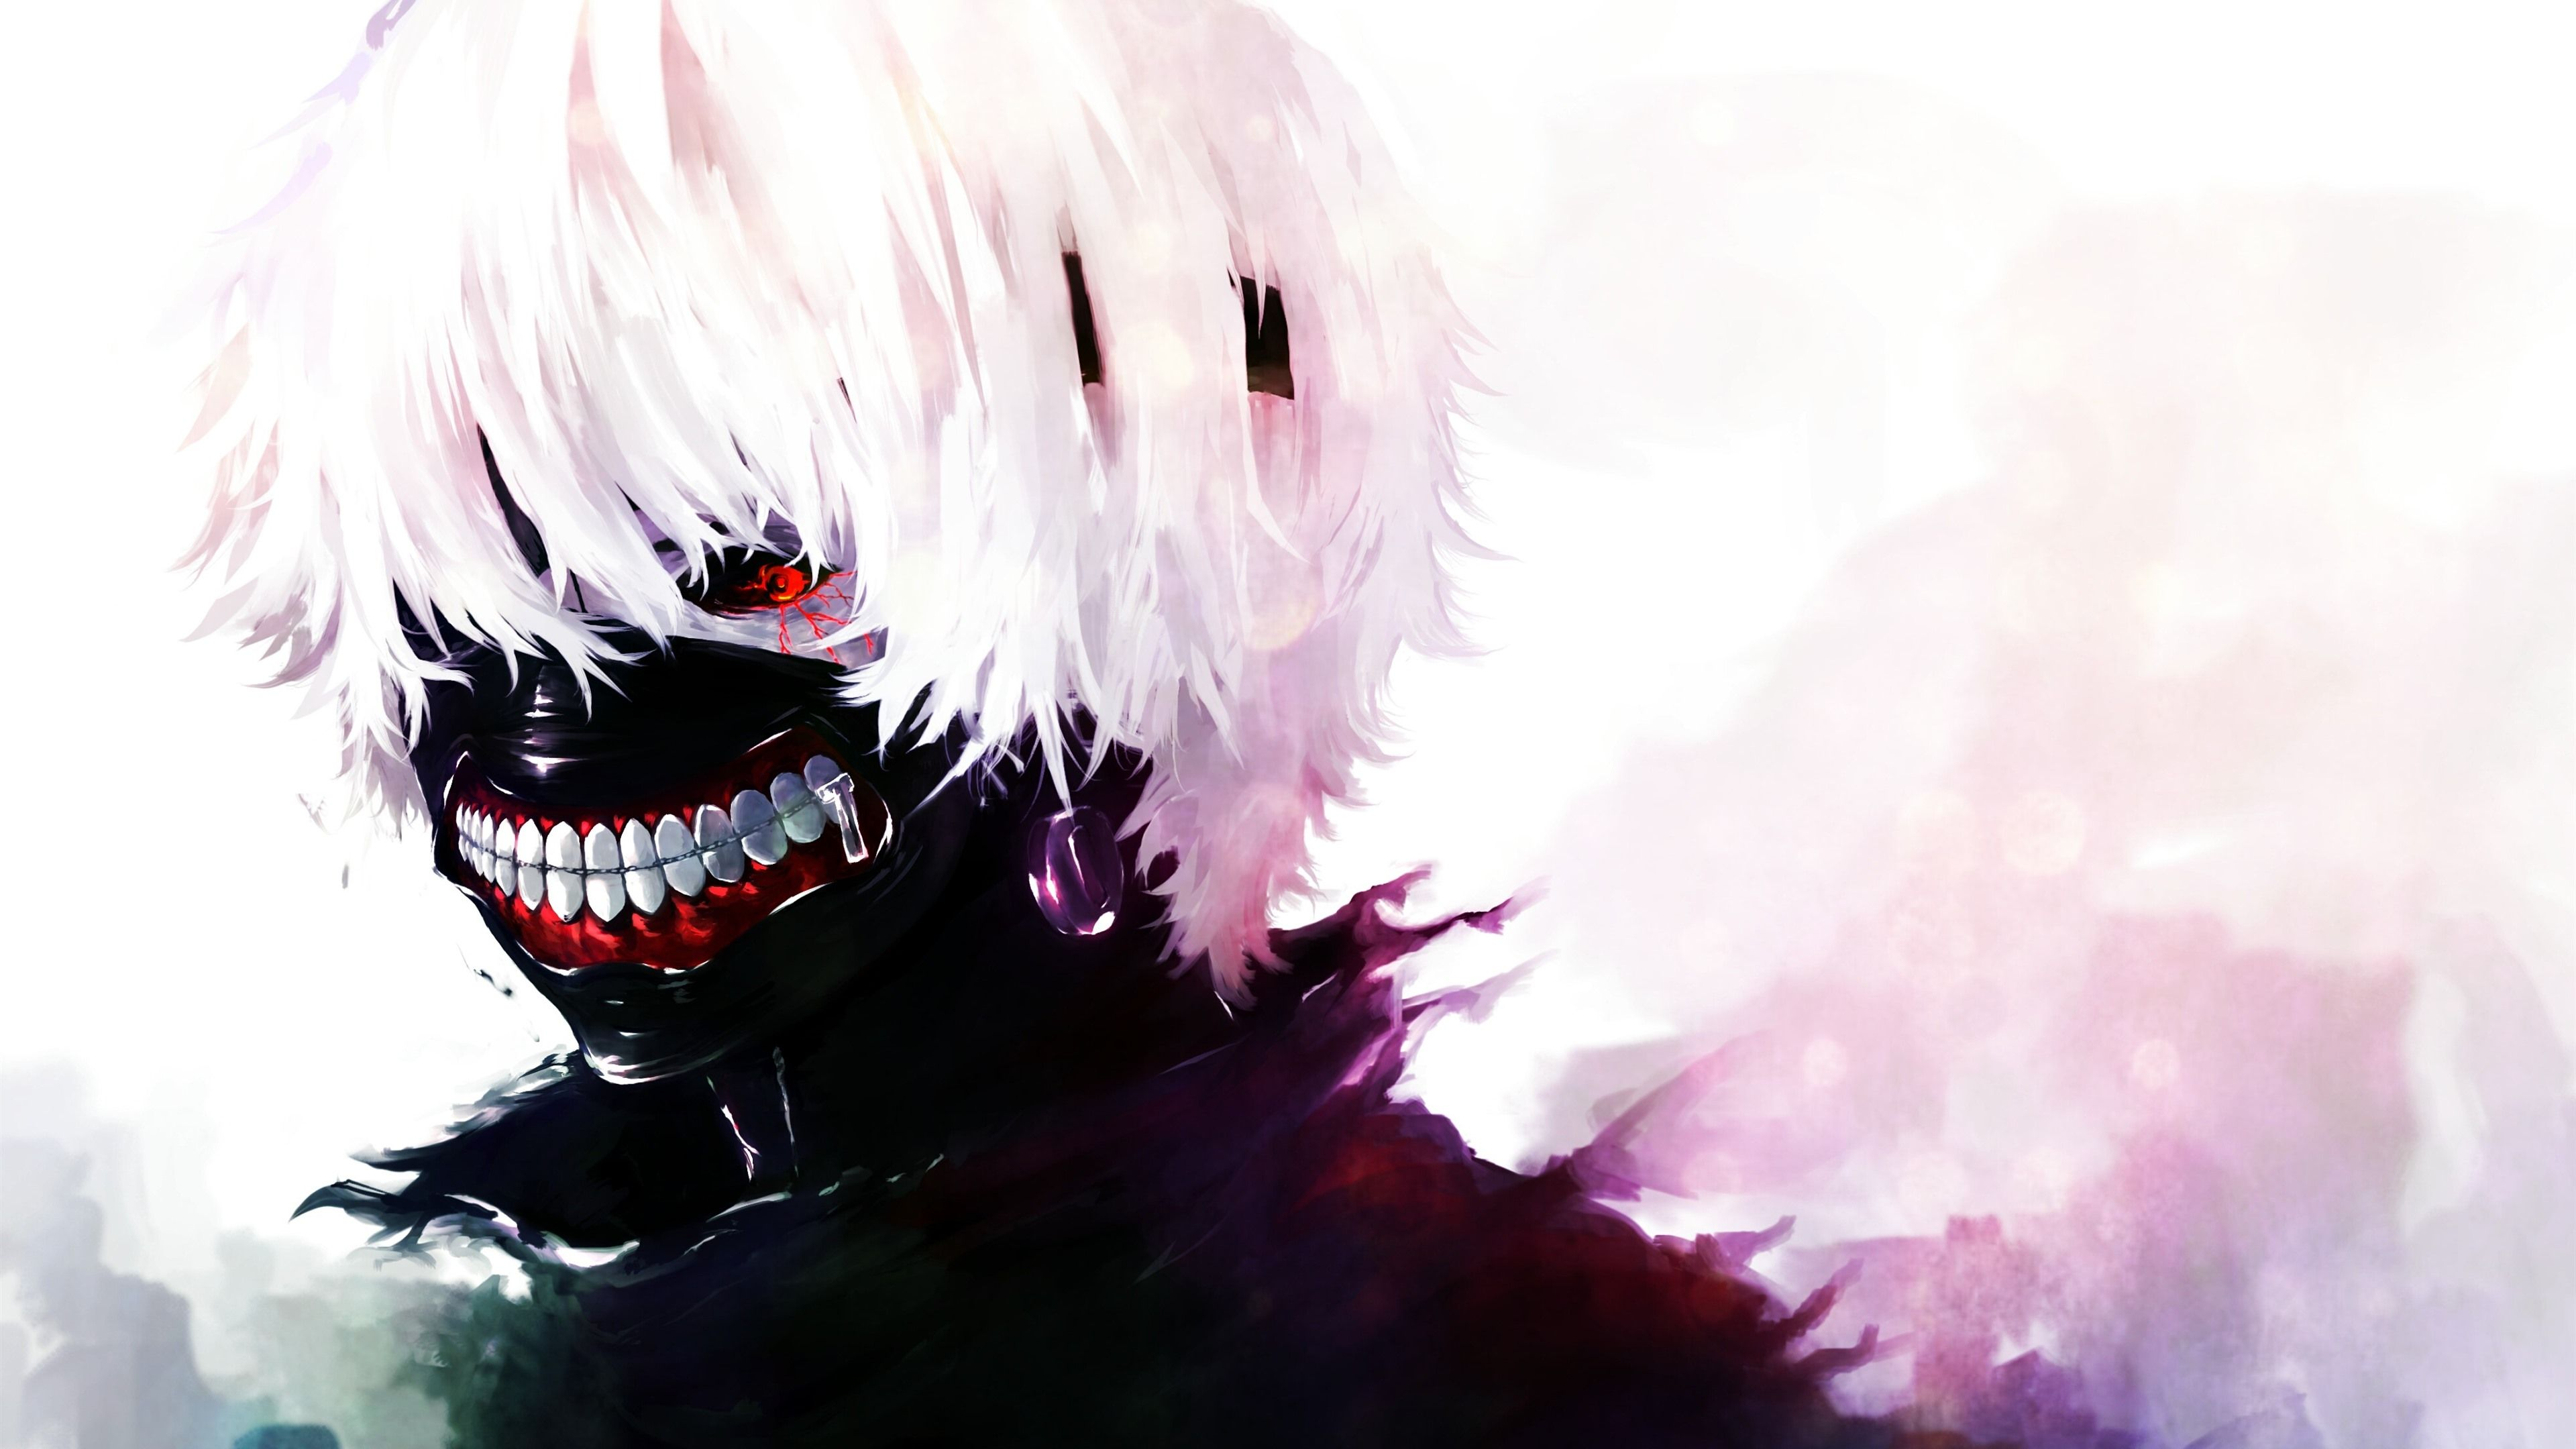 Tokyo ghoul 4k wallpaper engine is really great live wallpaper from steam wallpaper engine workshop for your computer desktop it can be the best. Tokyo Ghoul Fondos De Pantalla 4k Para Pc